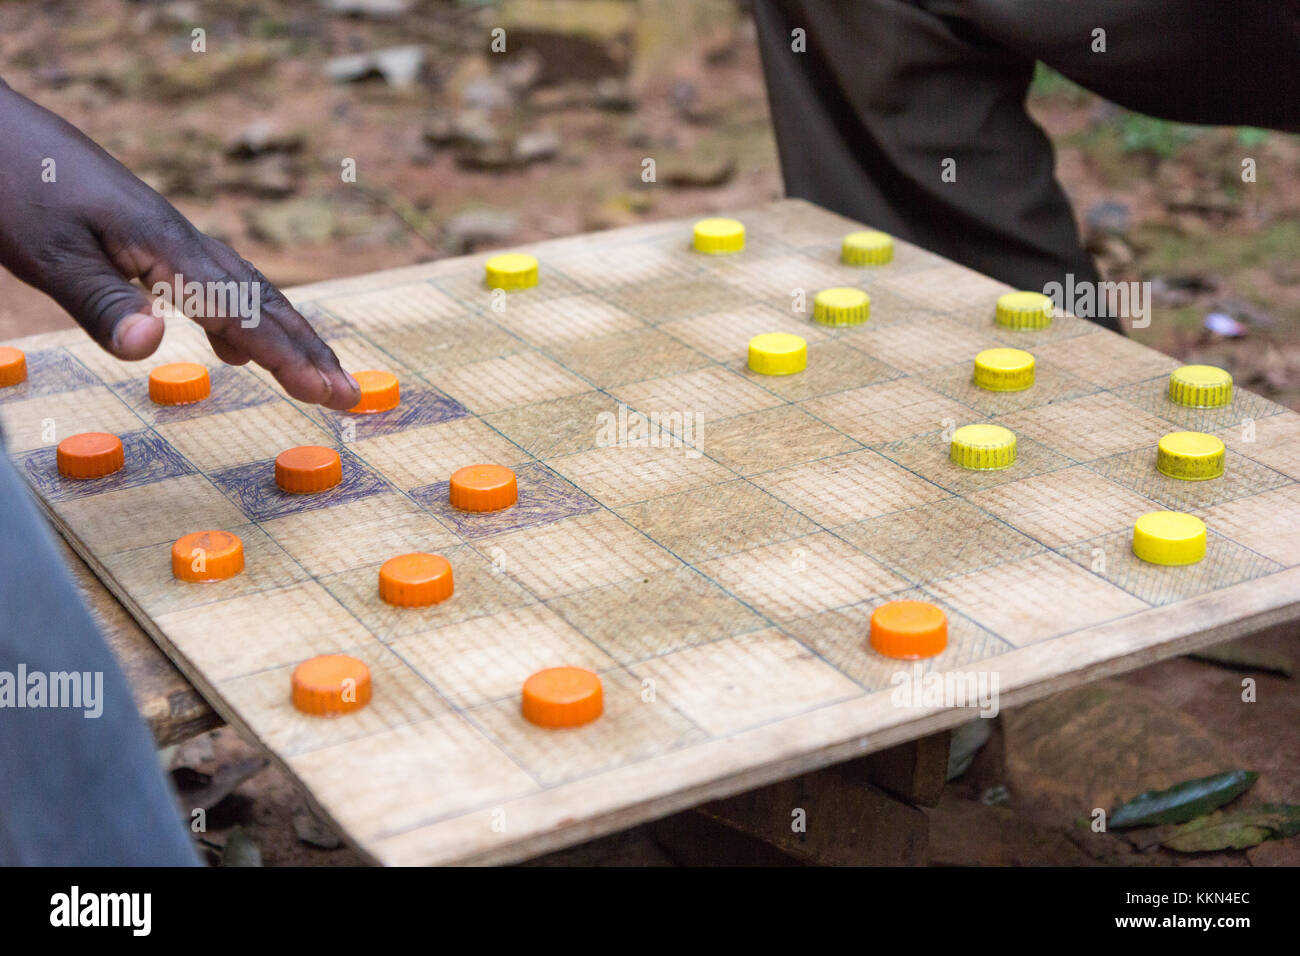 Ugandan men playing draughts (checkers) with plastic bottle lids serving as pieces. - Stock Image